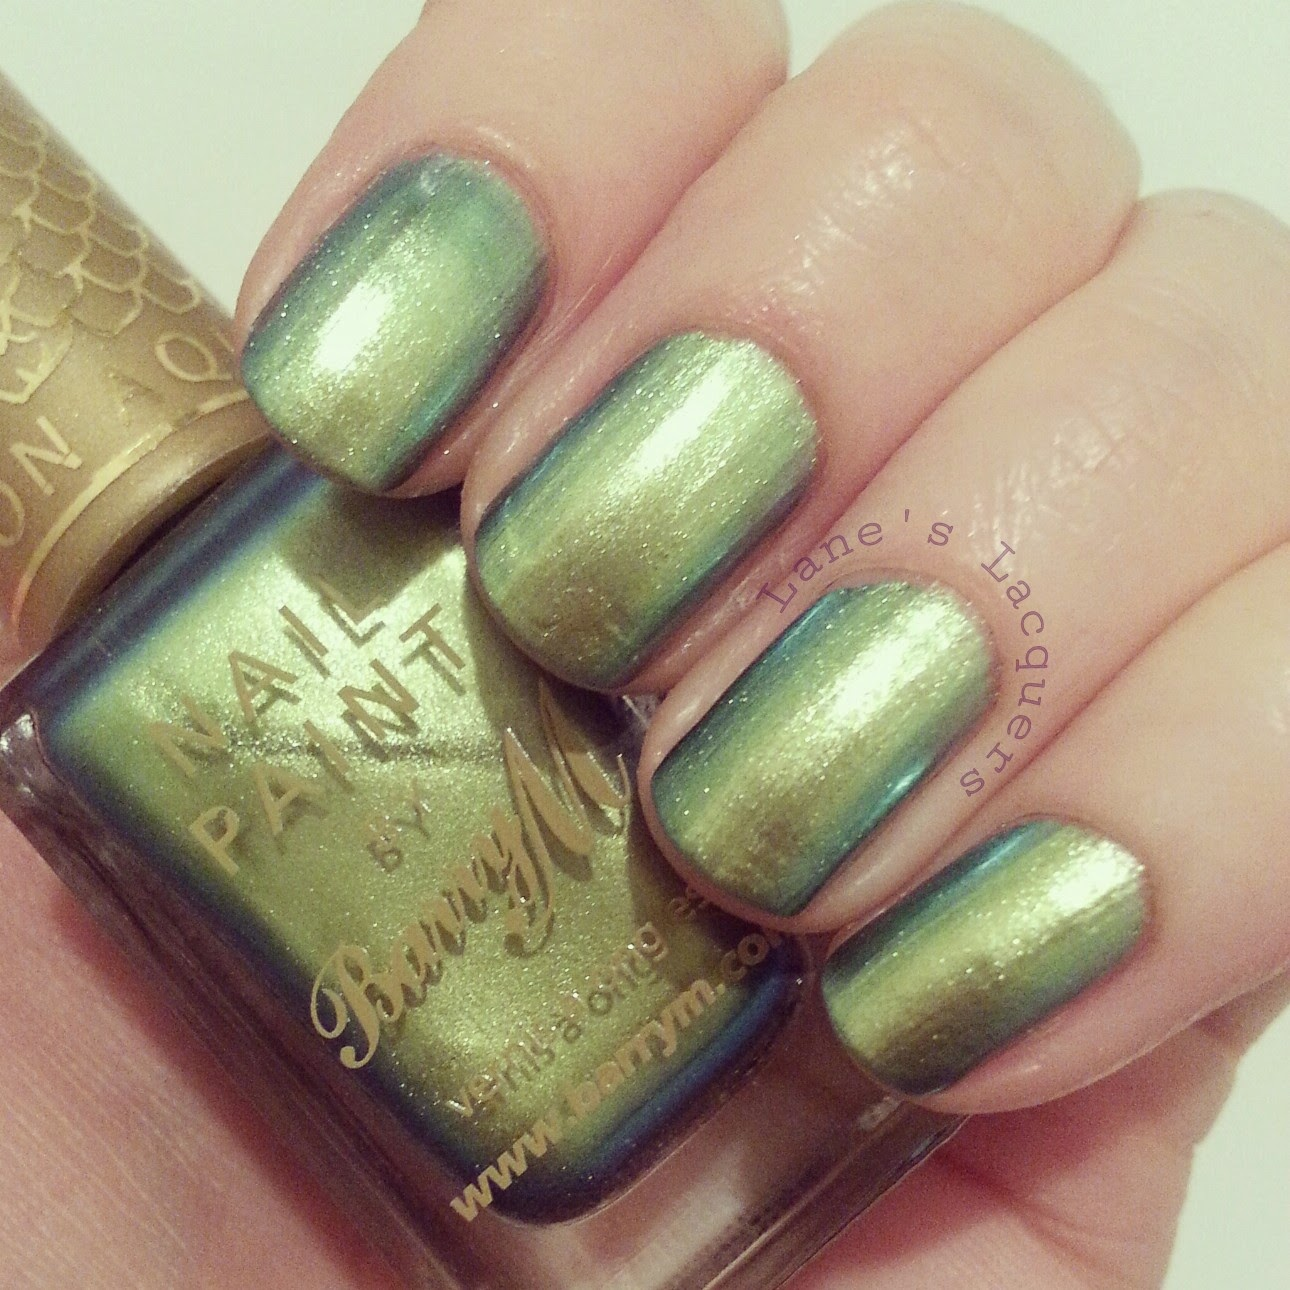 barry-m-aquarium-green-aqnp5-swatch-nails